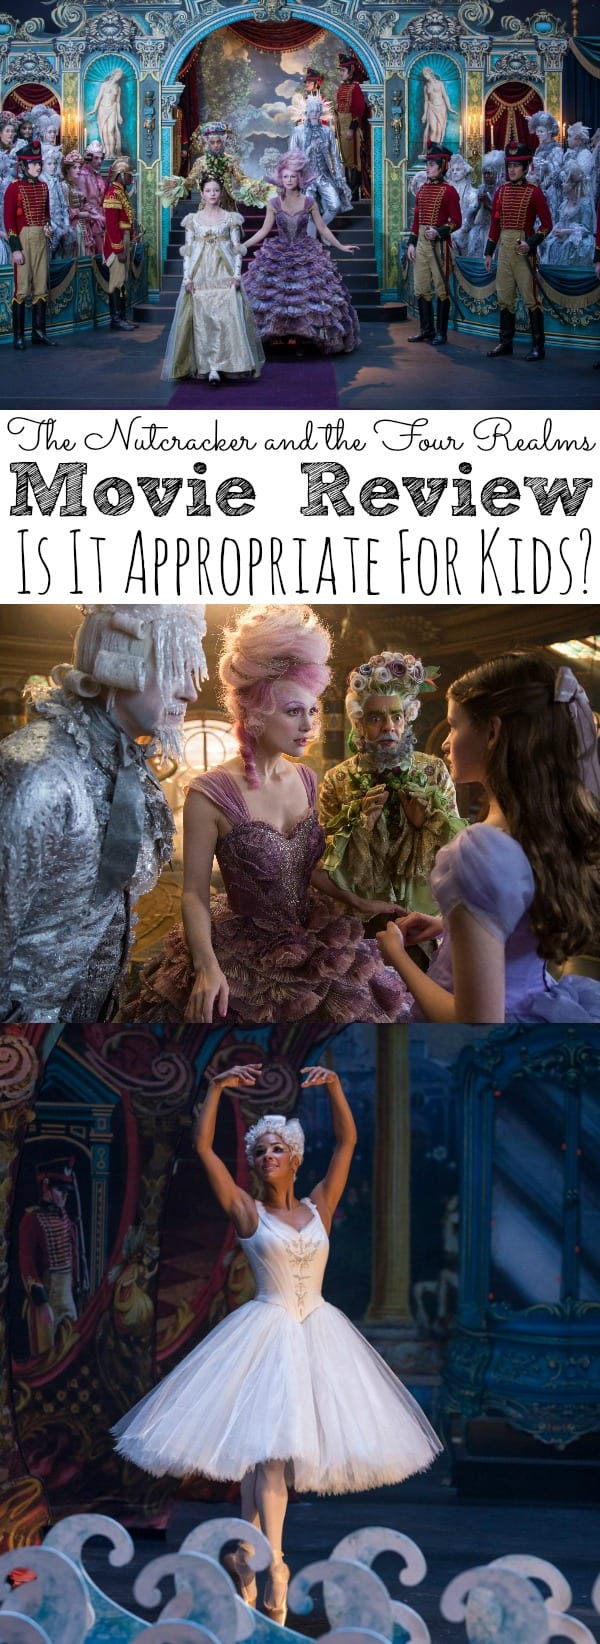 The Nutcracker and the Four Realms Movie Review | Is It Appropriate For Kids?